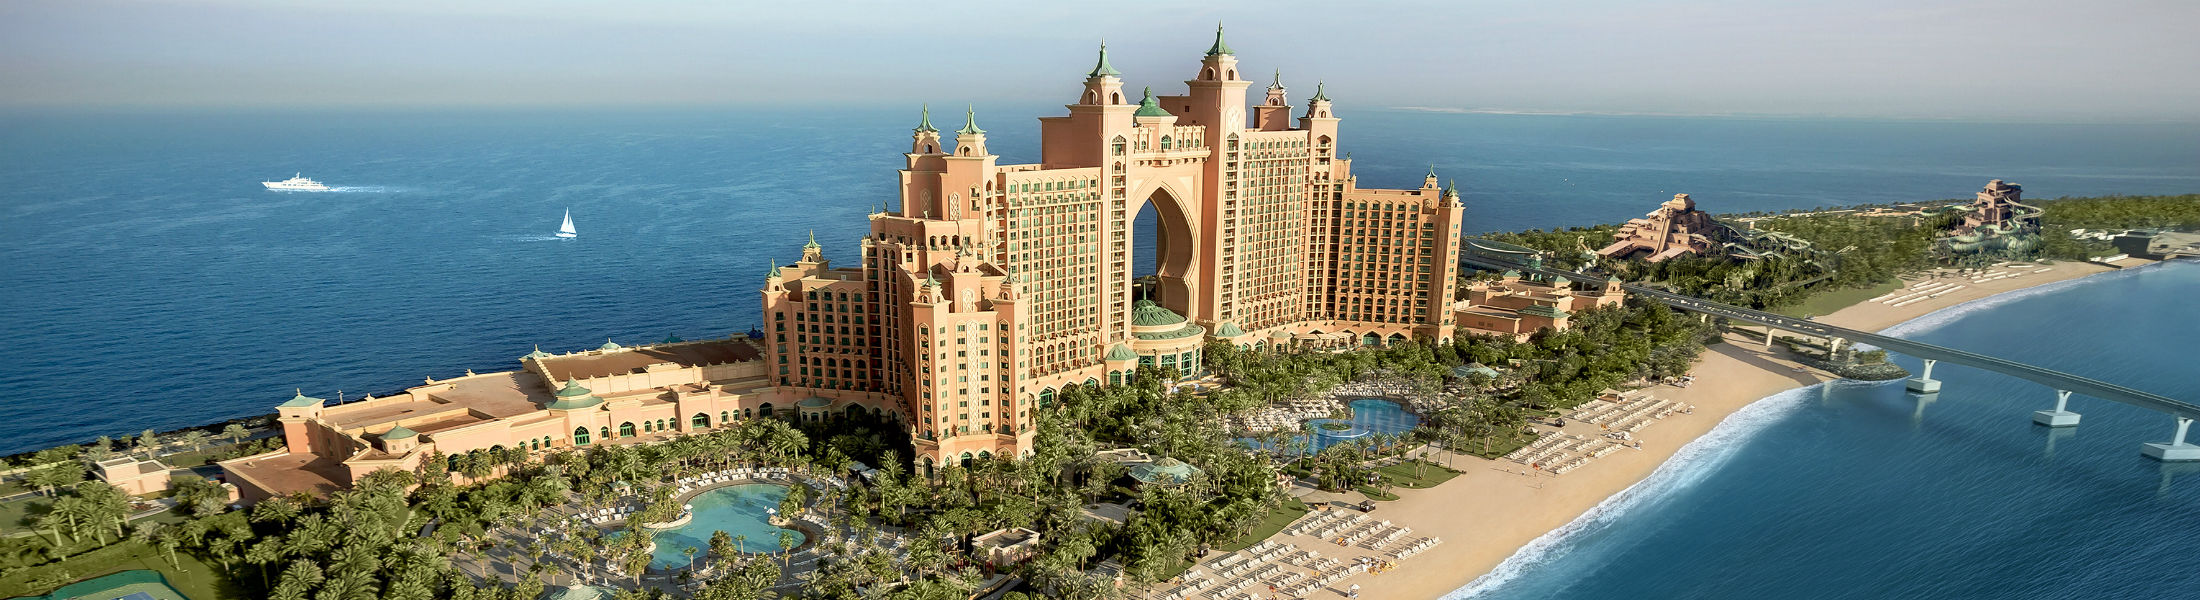 Atlantis The Palm beach front